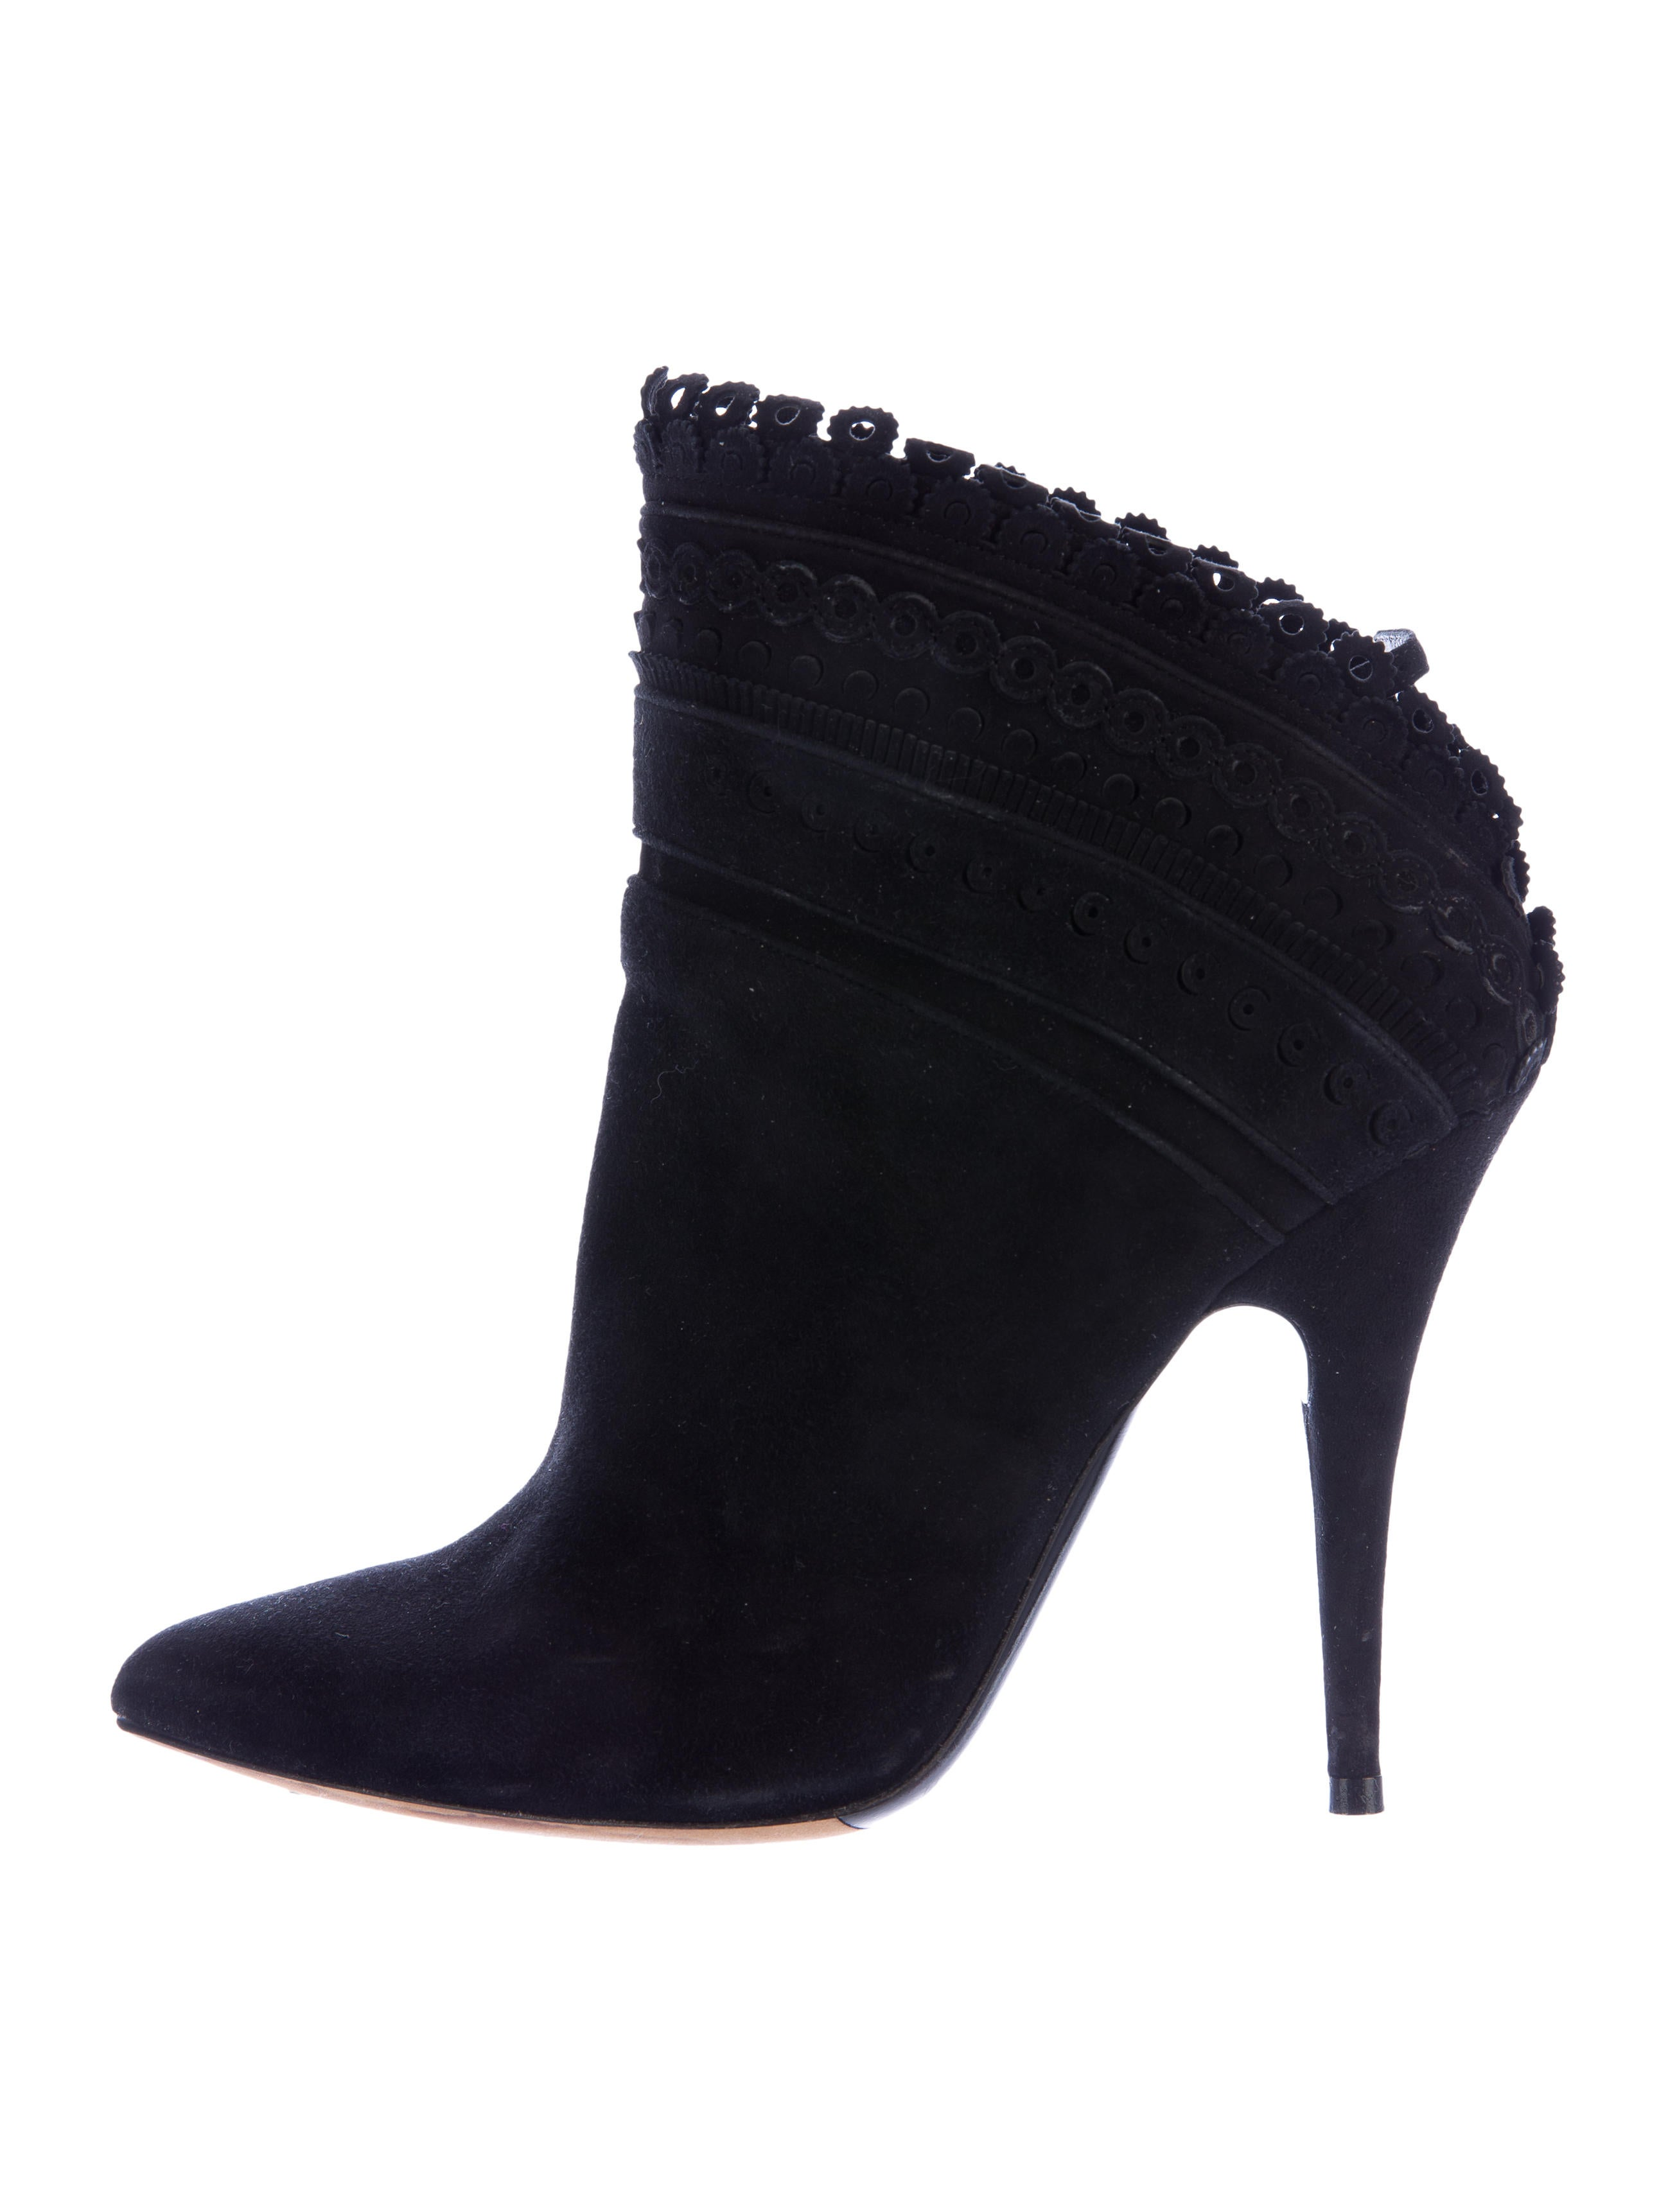 Tabitha Simmons Suede Pointed-Toe Booties prices online cheap sale exclusive YZk4V